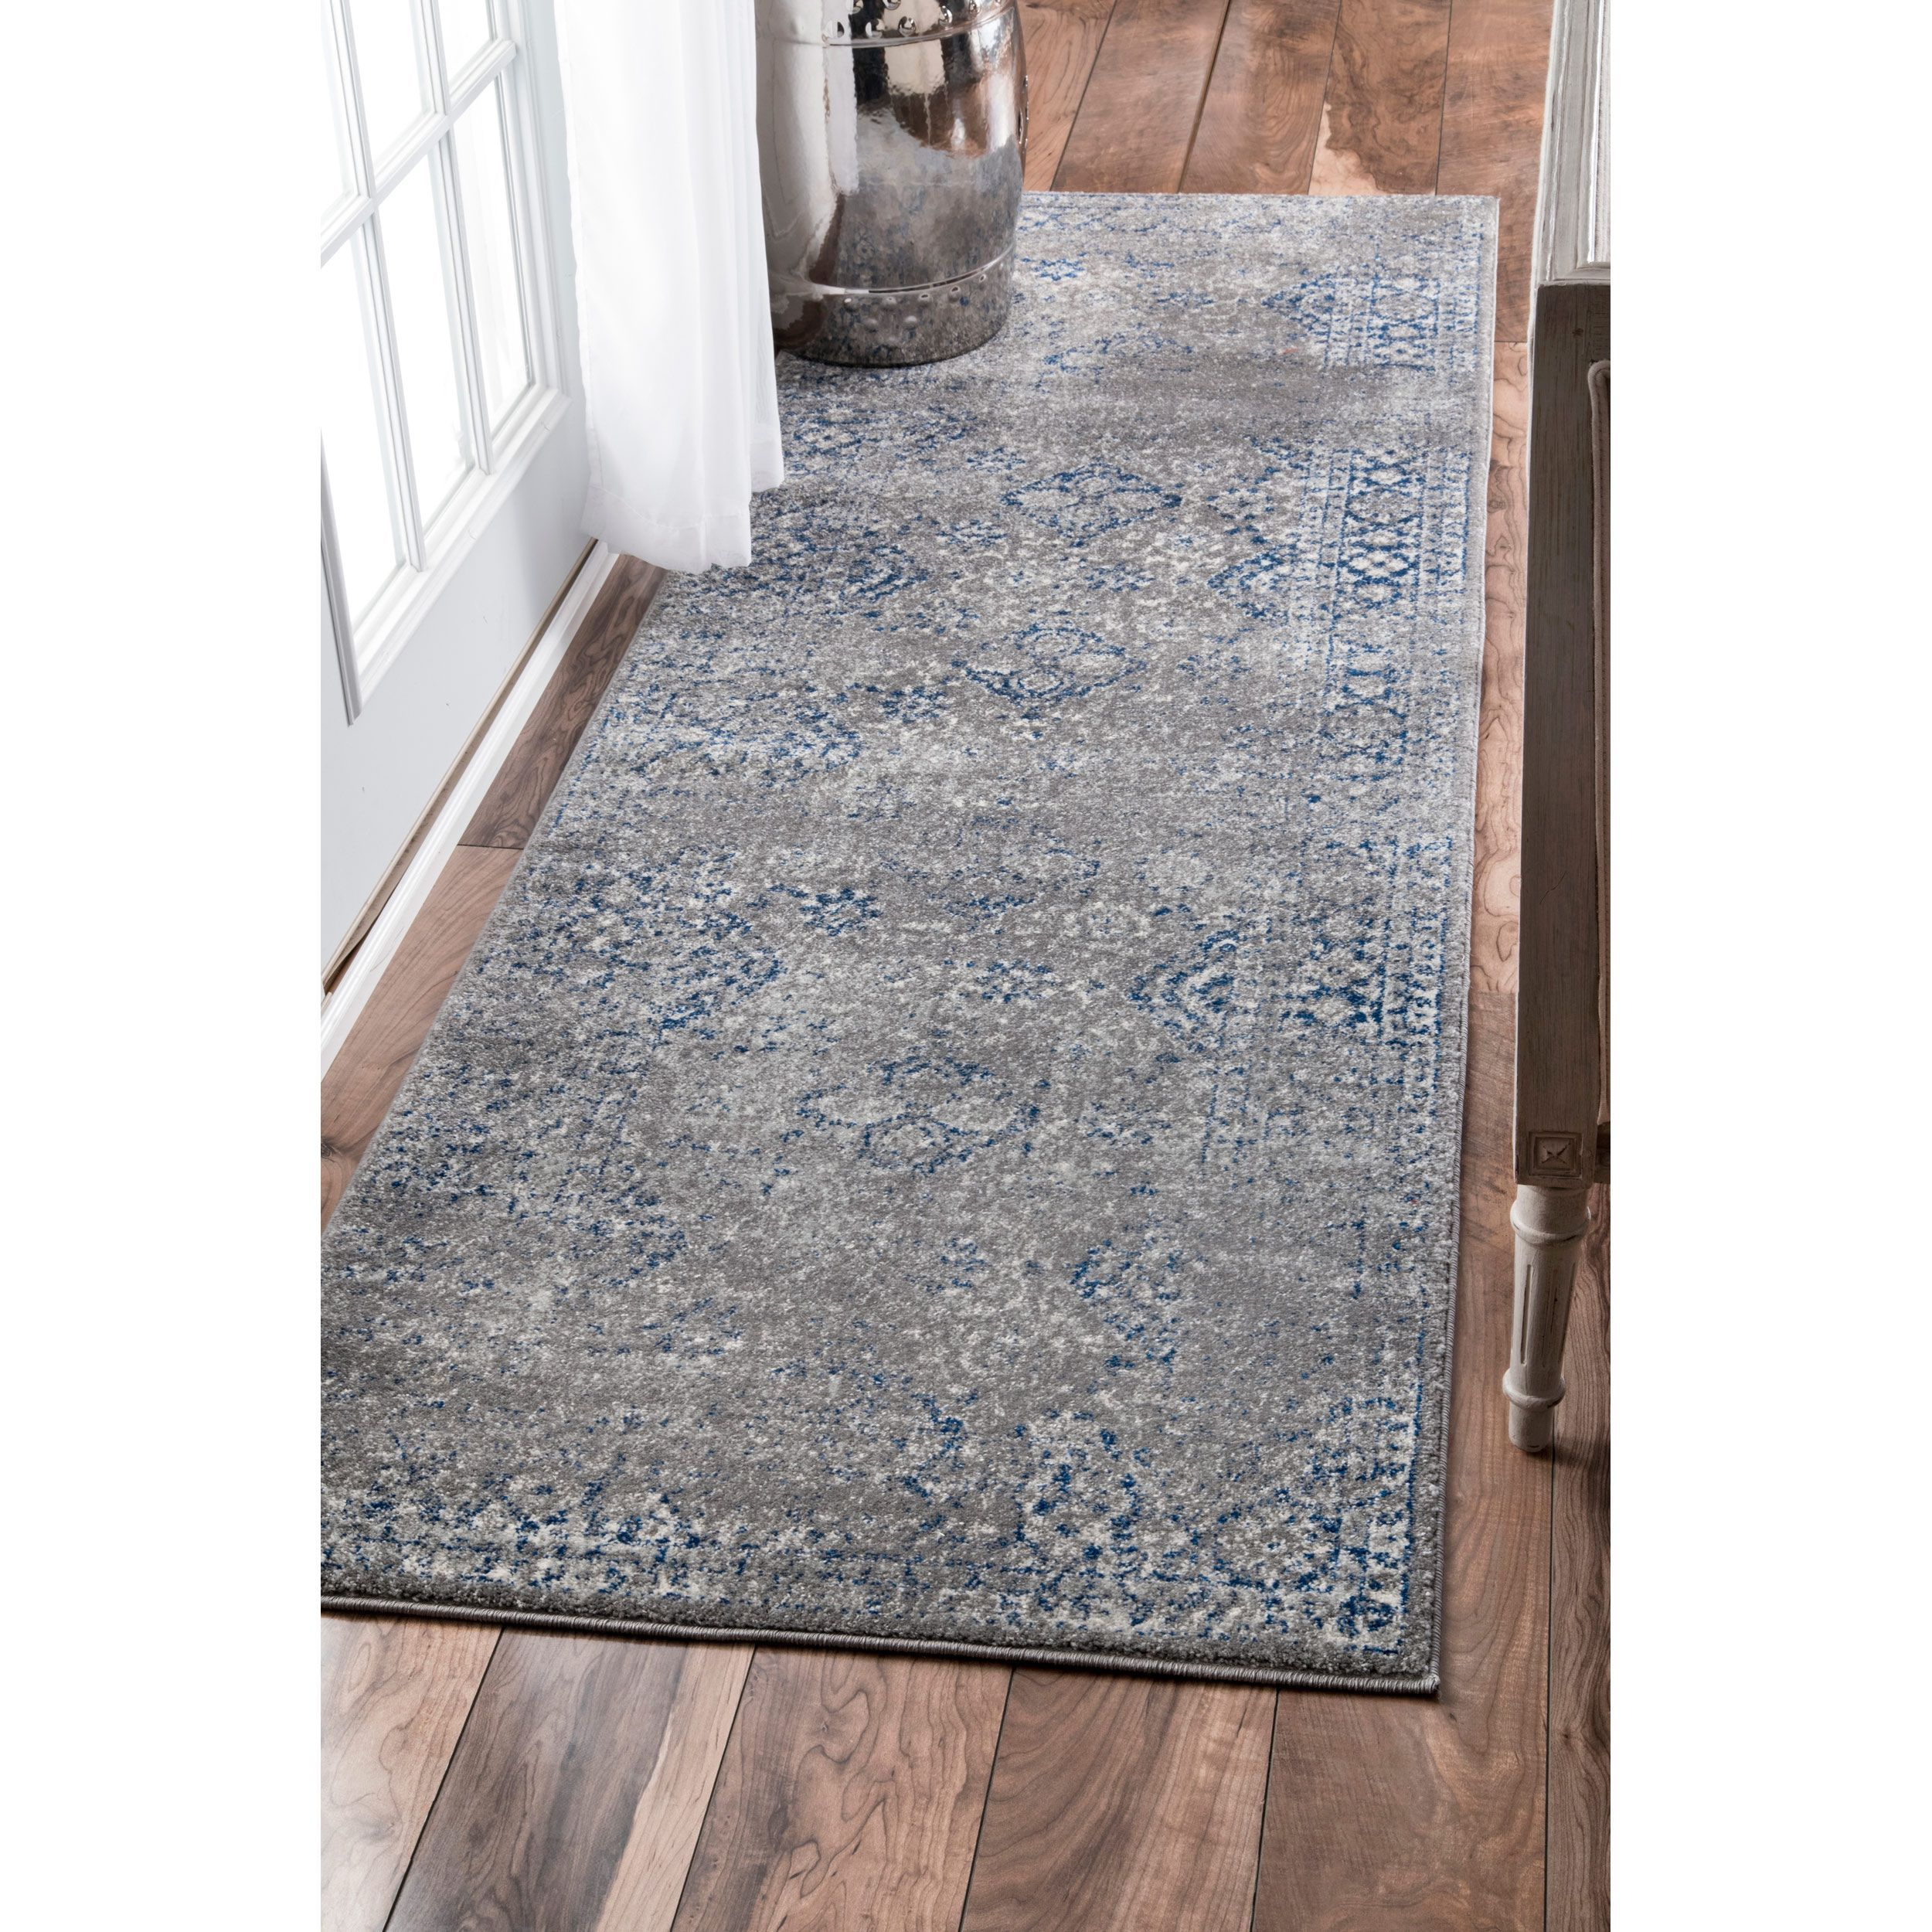 Nuloom traditional distressed grey runner rug 2 39 8 x 8 for Best stores for rugs